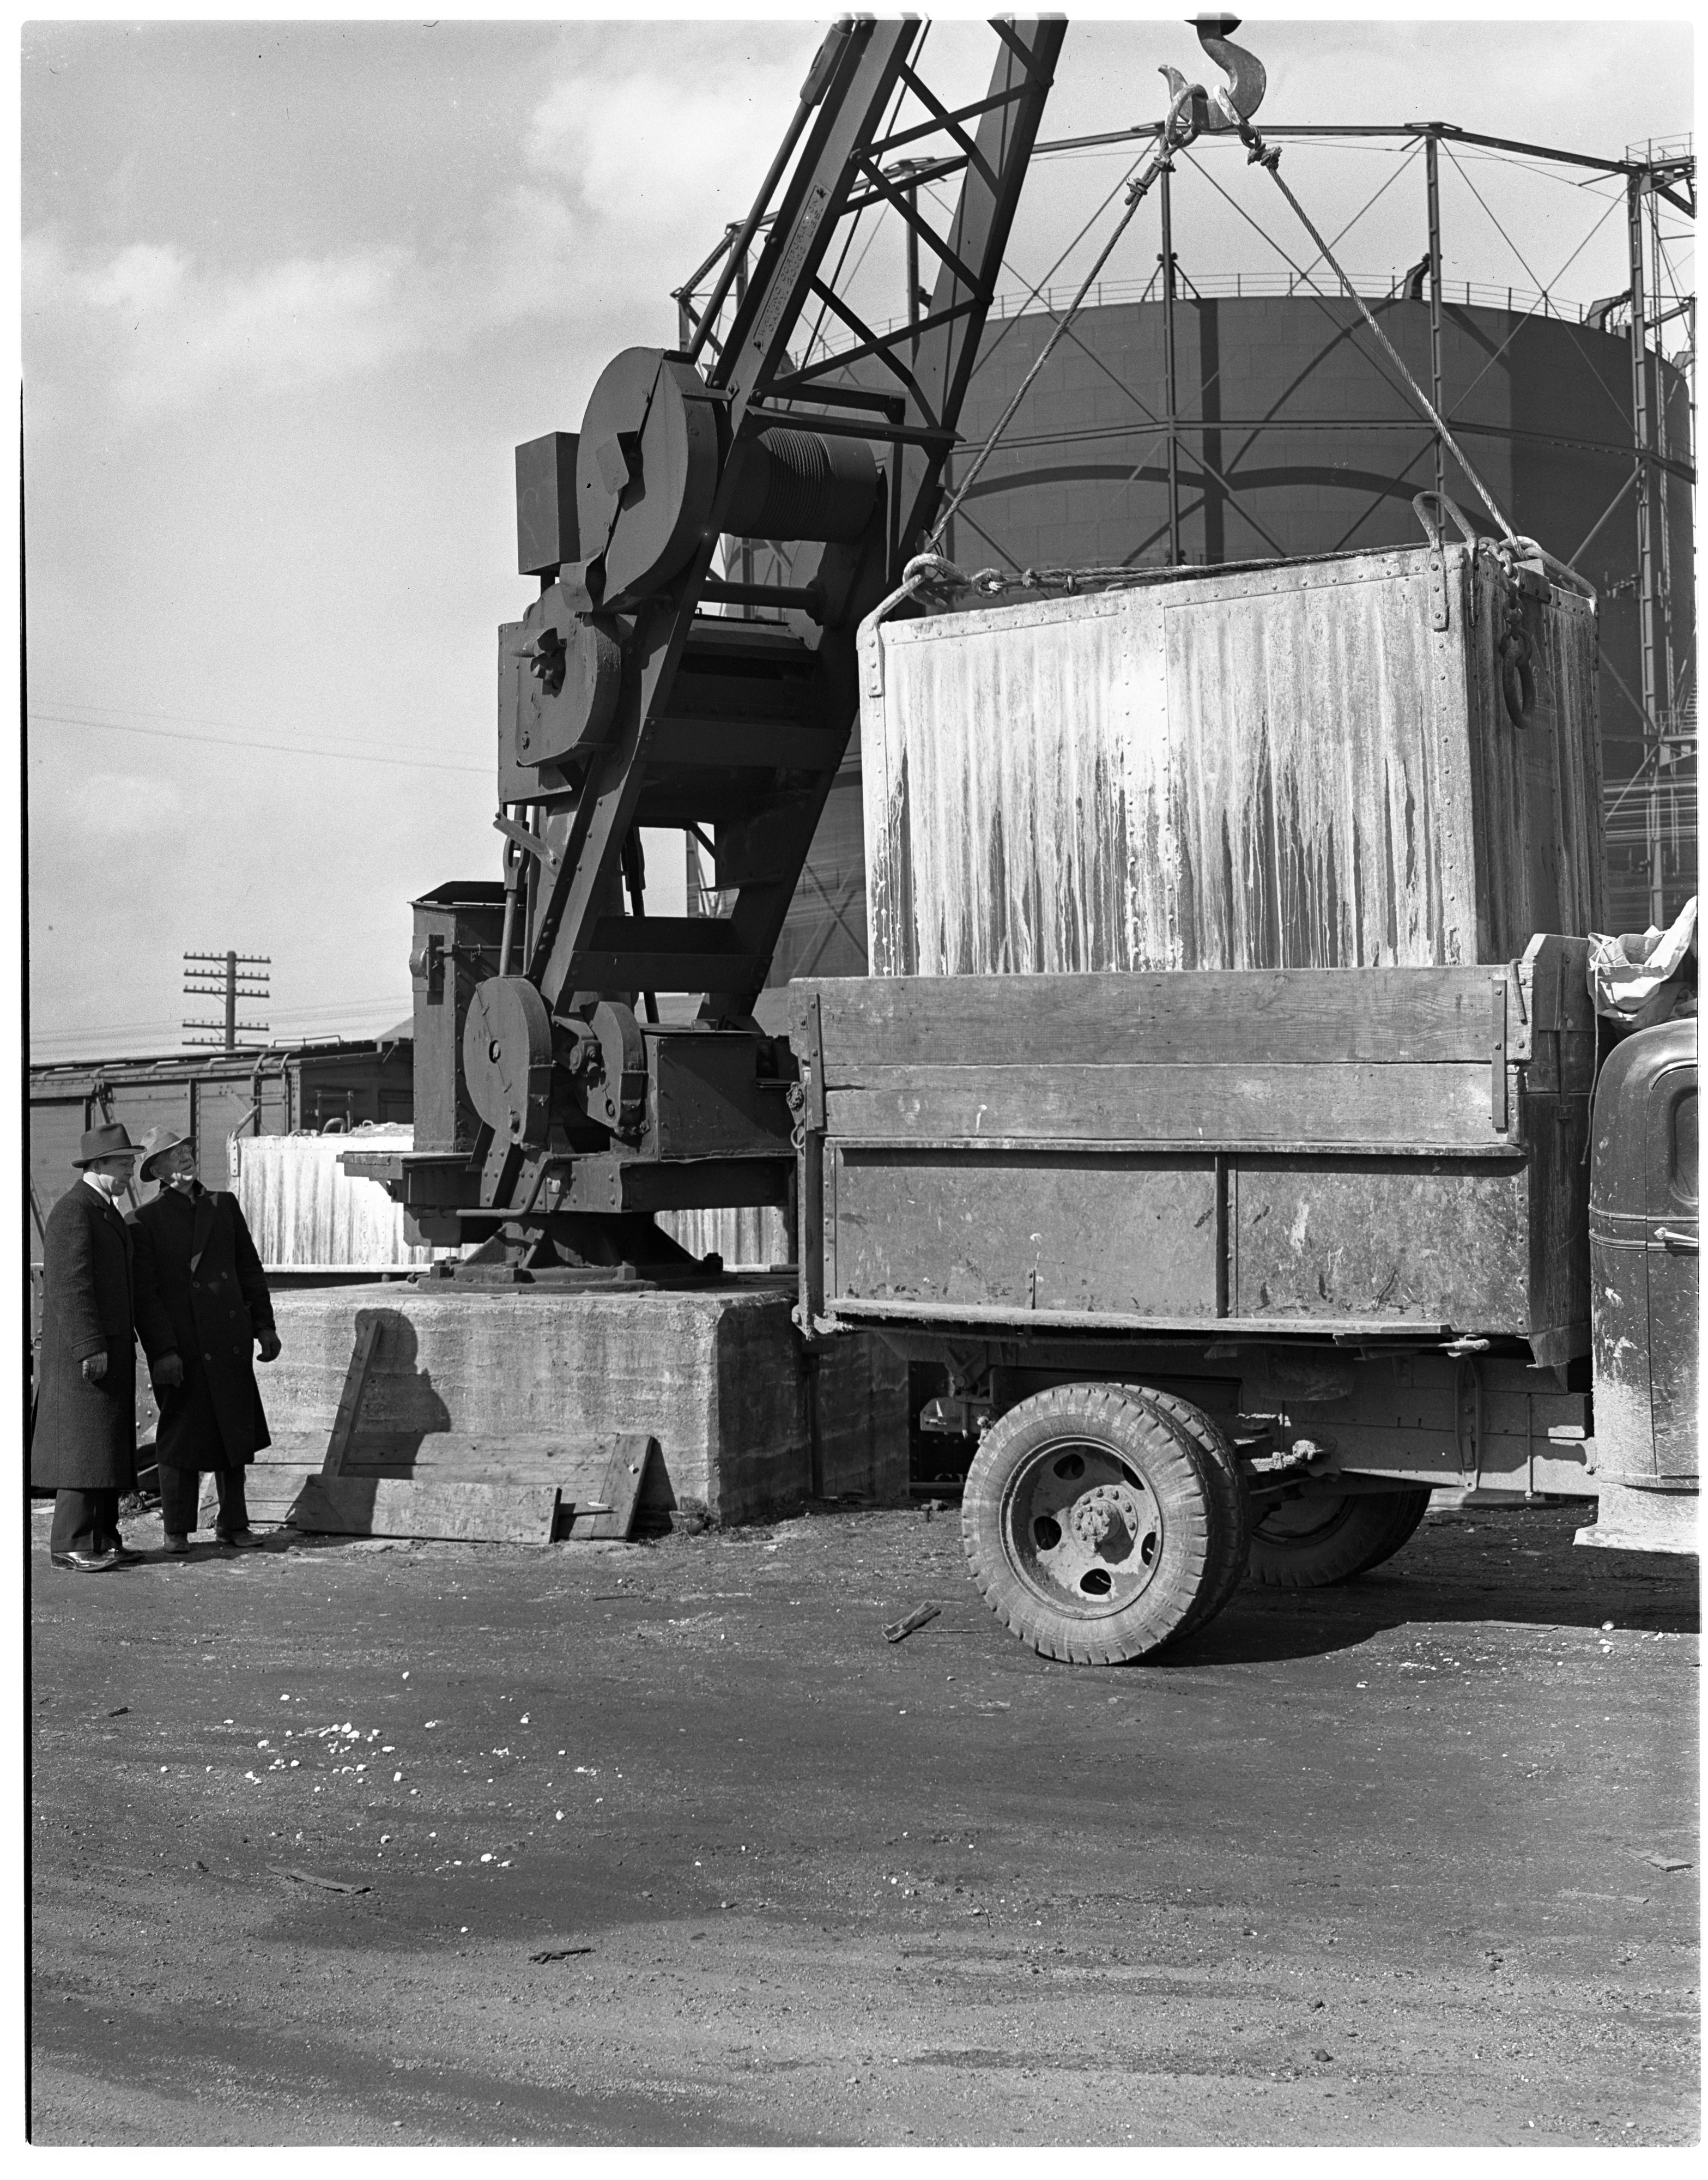 Lime Delivery for the Water Plant at Michigan Central Railroad Station image